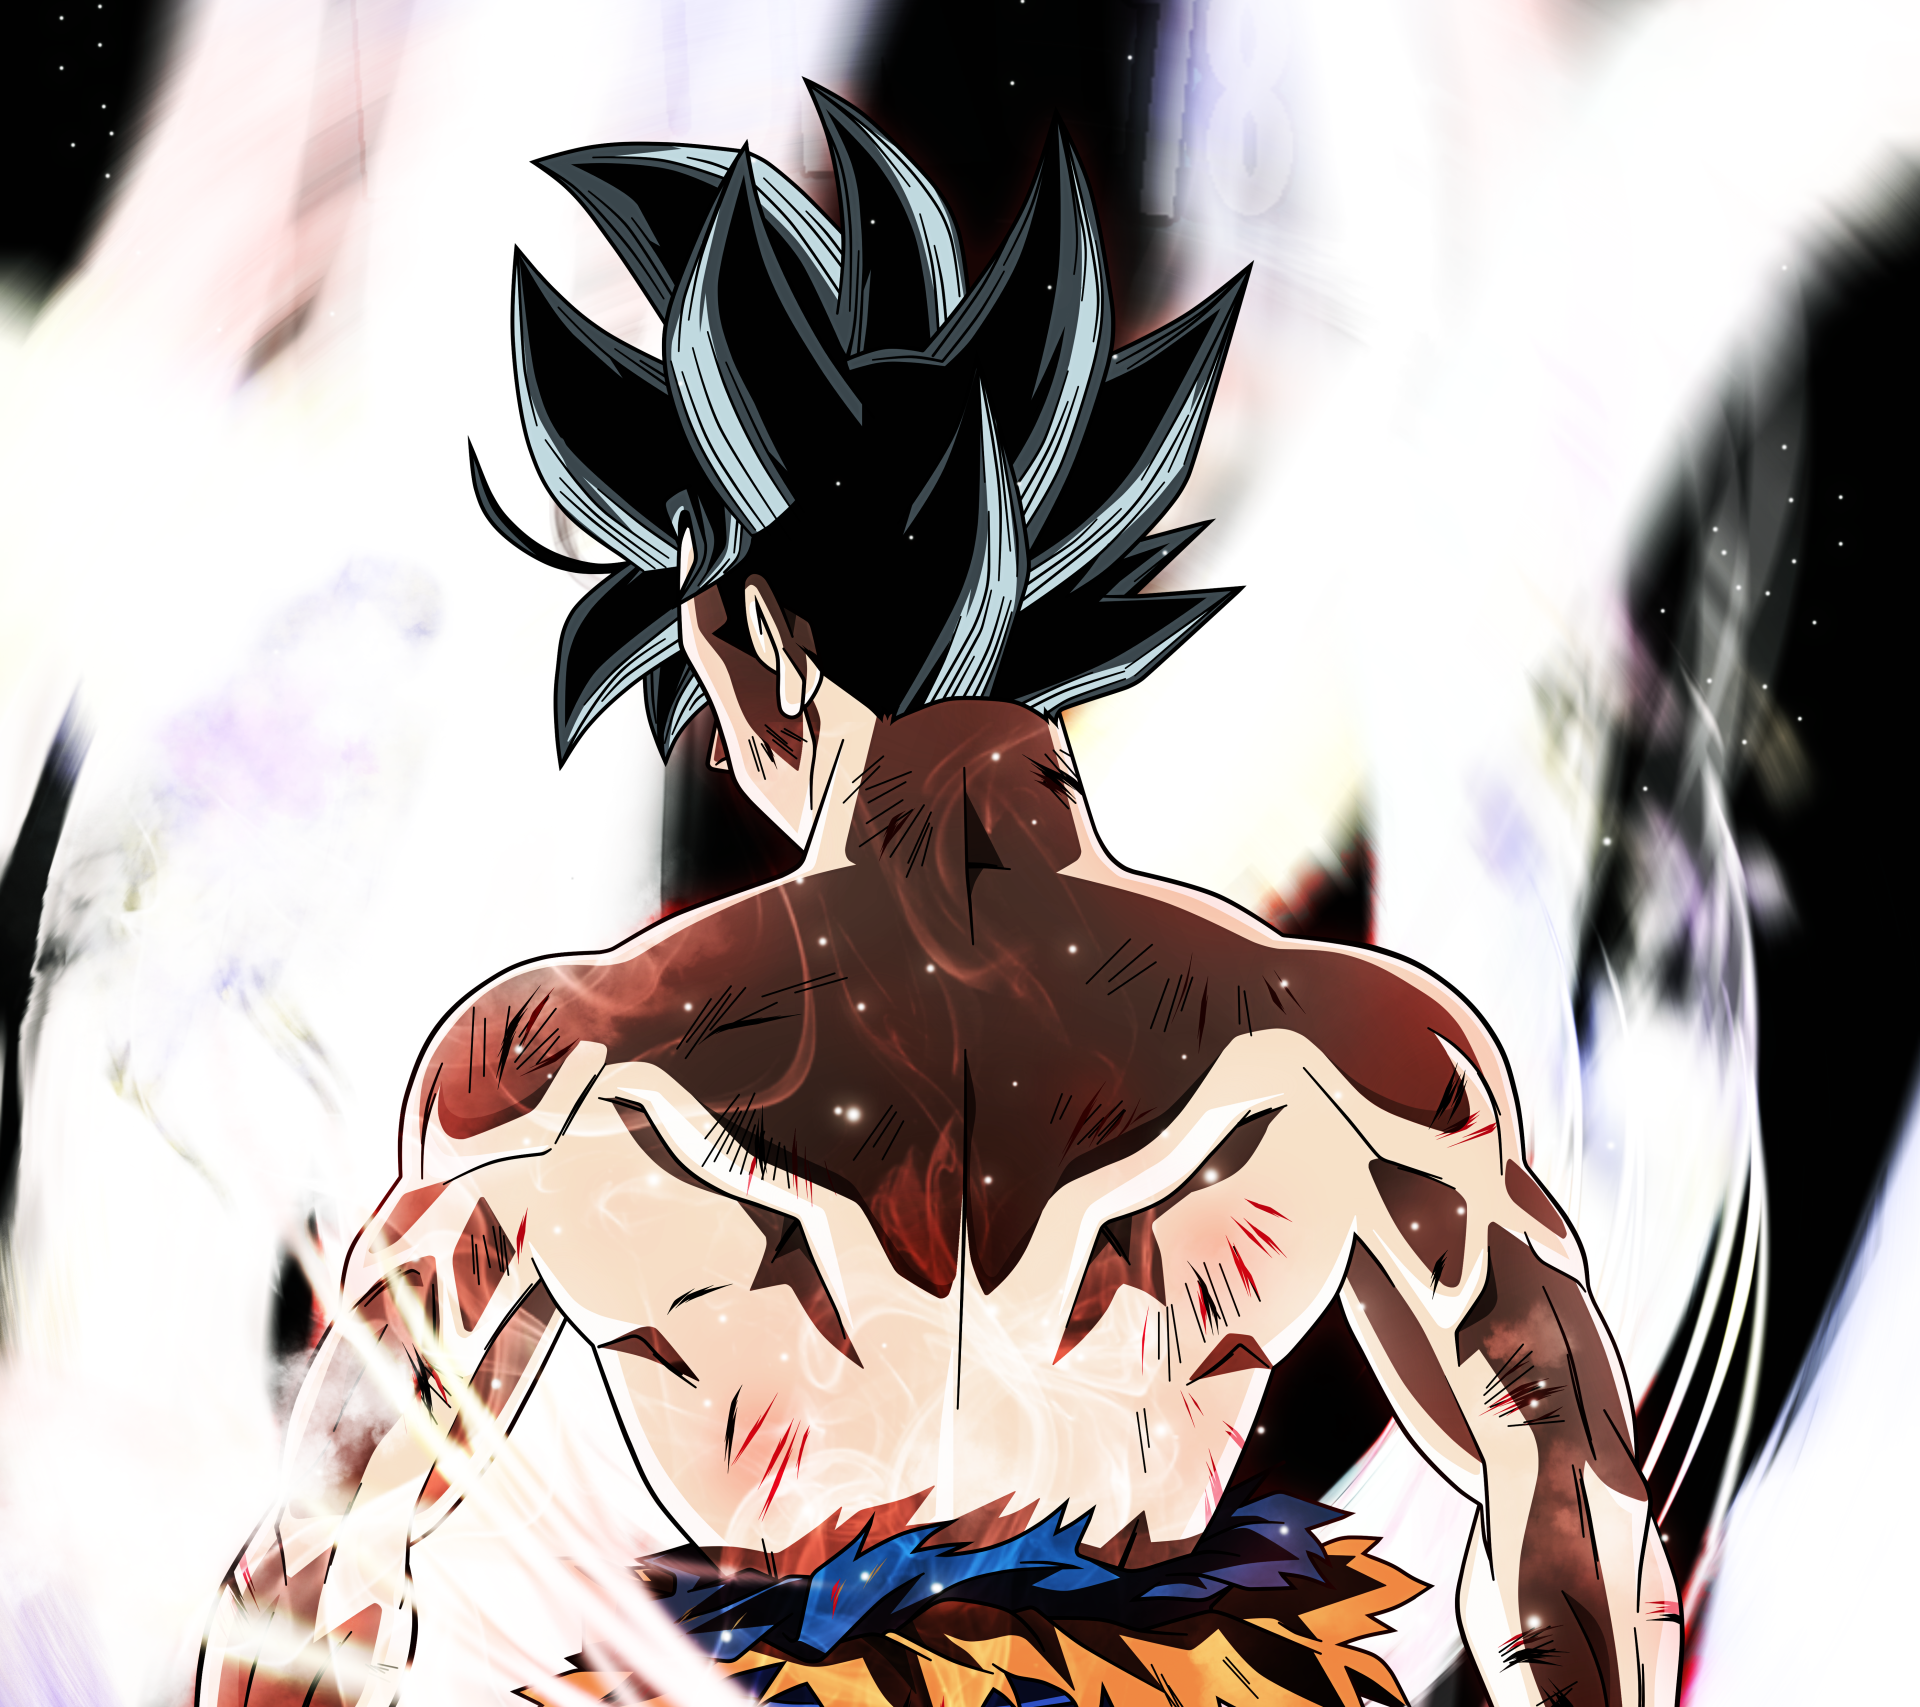 Anime - Dragon Ball Super  Goku Ultra Instinct (Dragon Ball) Saiyan Anime Wallpaper